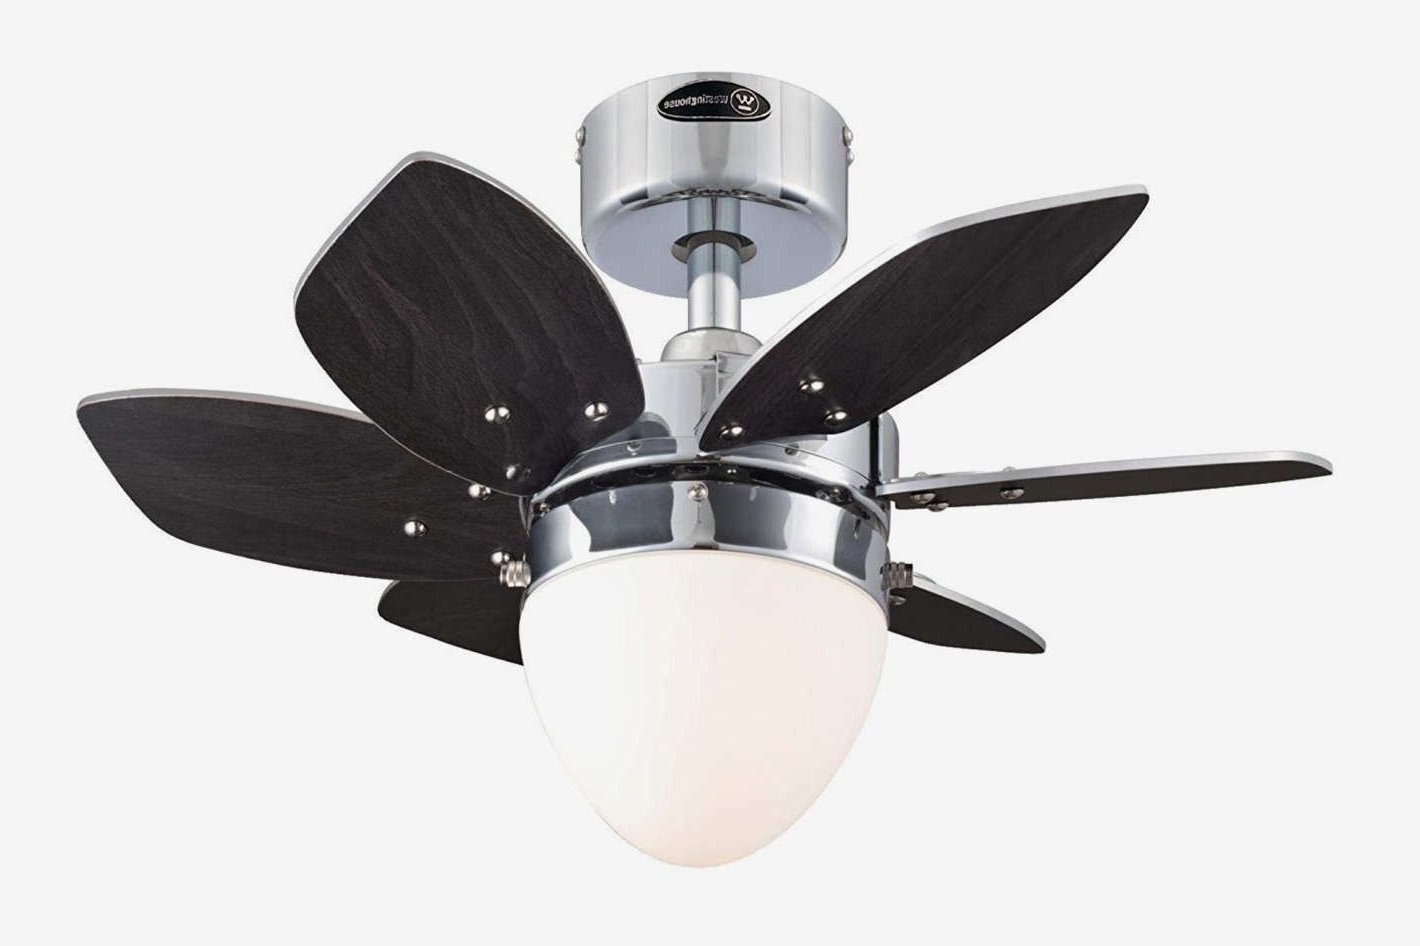 Latest Outdoor Ceiling Fans Under $150 In The 9 Best Ceiling Fans On Amazon (View 14 of 20)